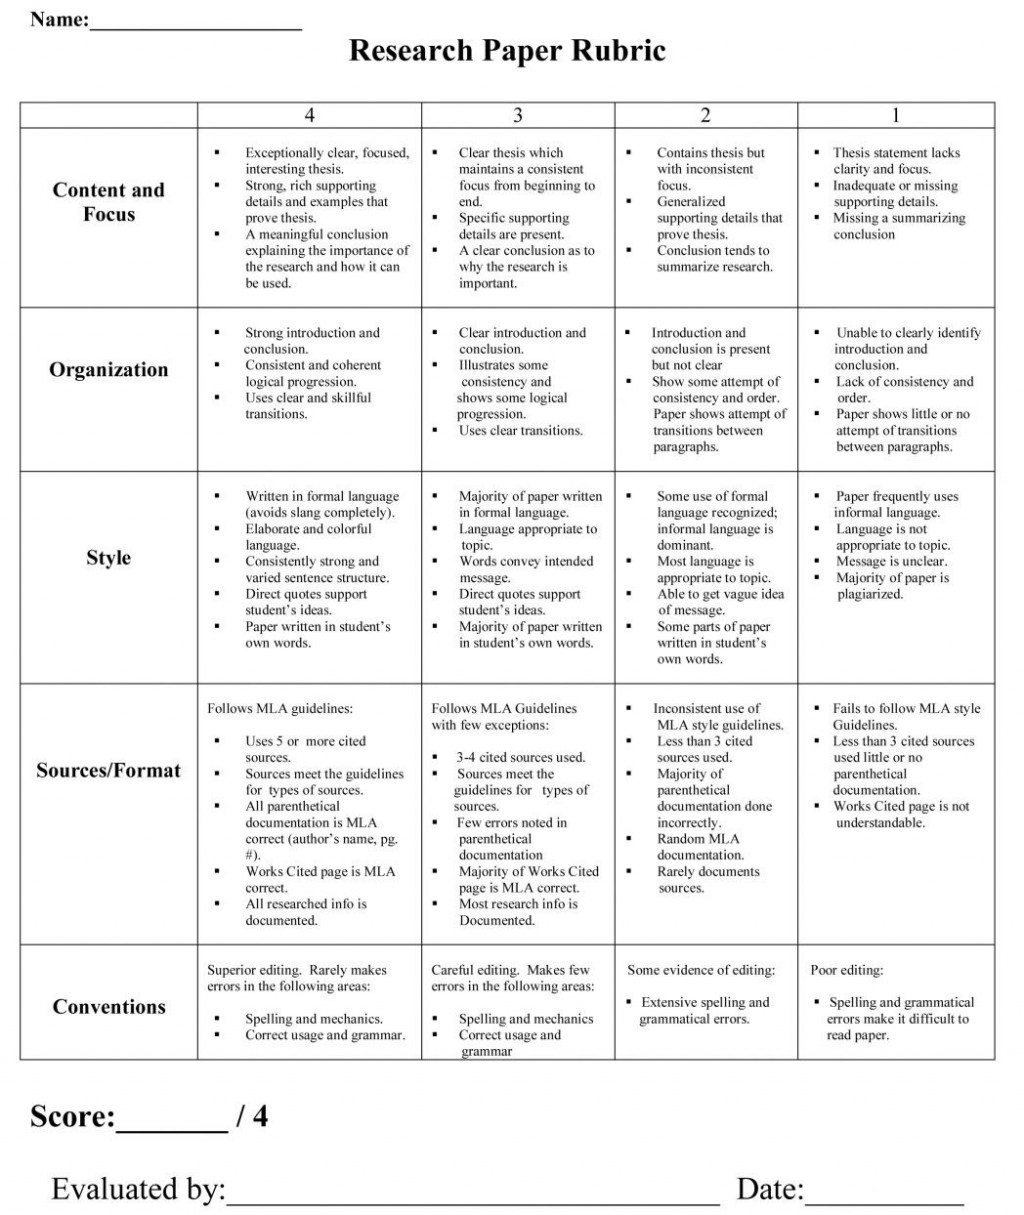 005 Research Paper Rubrics High School Rubric Unique Written Papers Line Free Assignment Help Uk Buy College Ess Beautiful English Argumentative Common Core Large